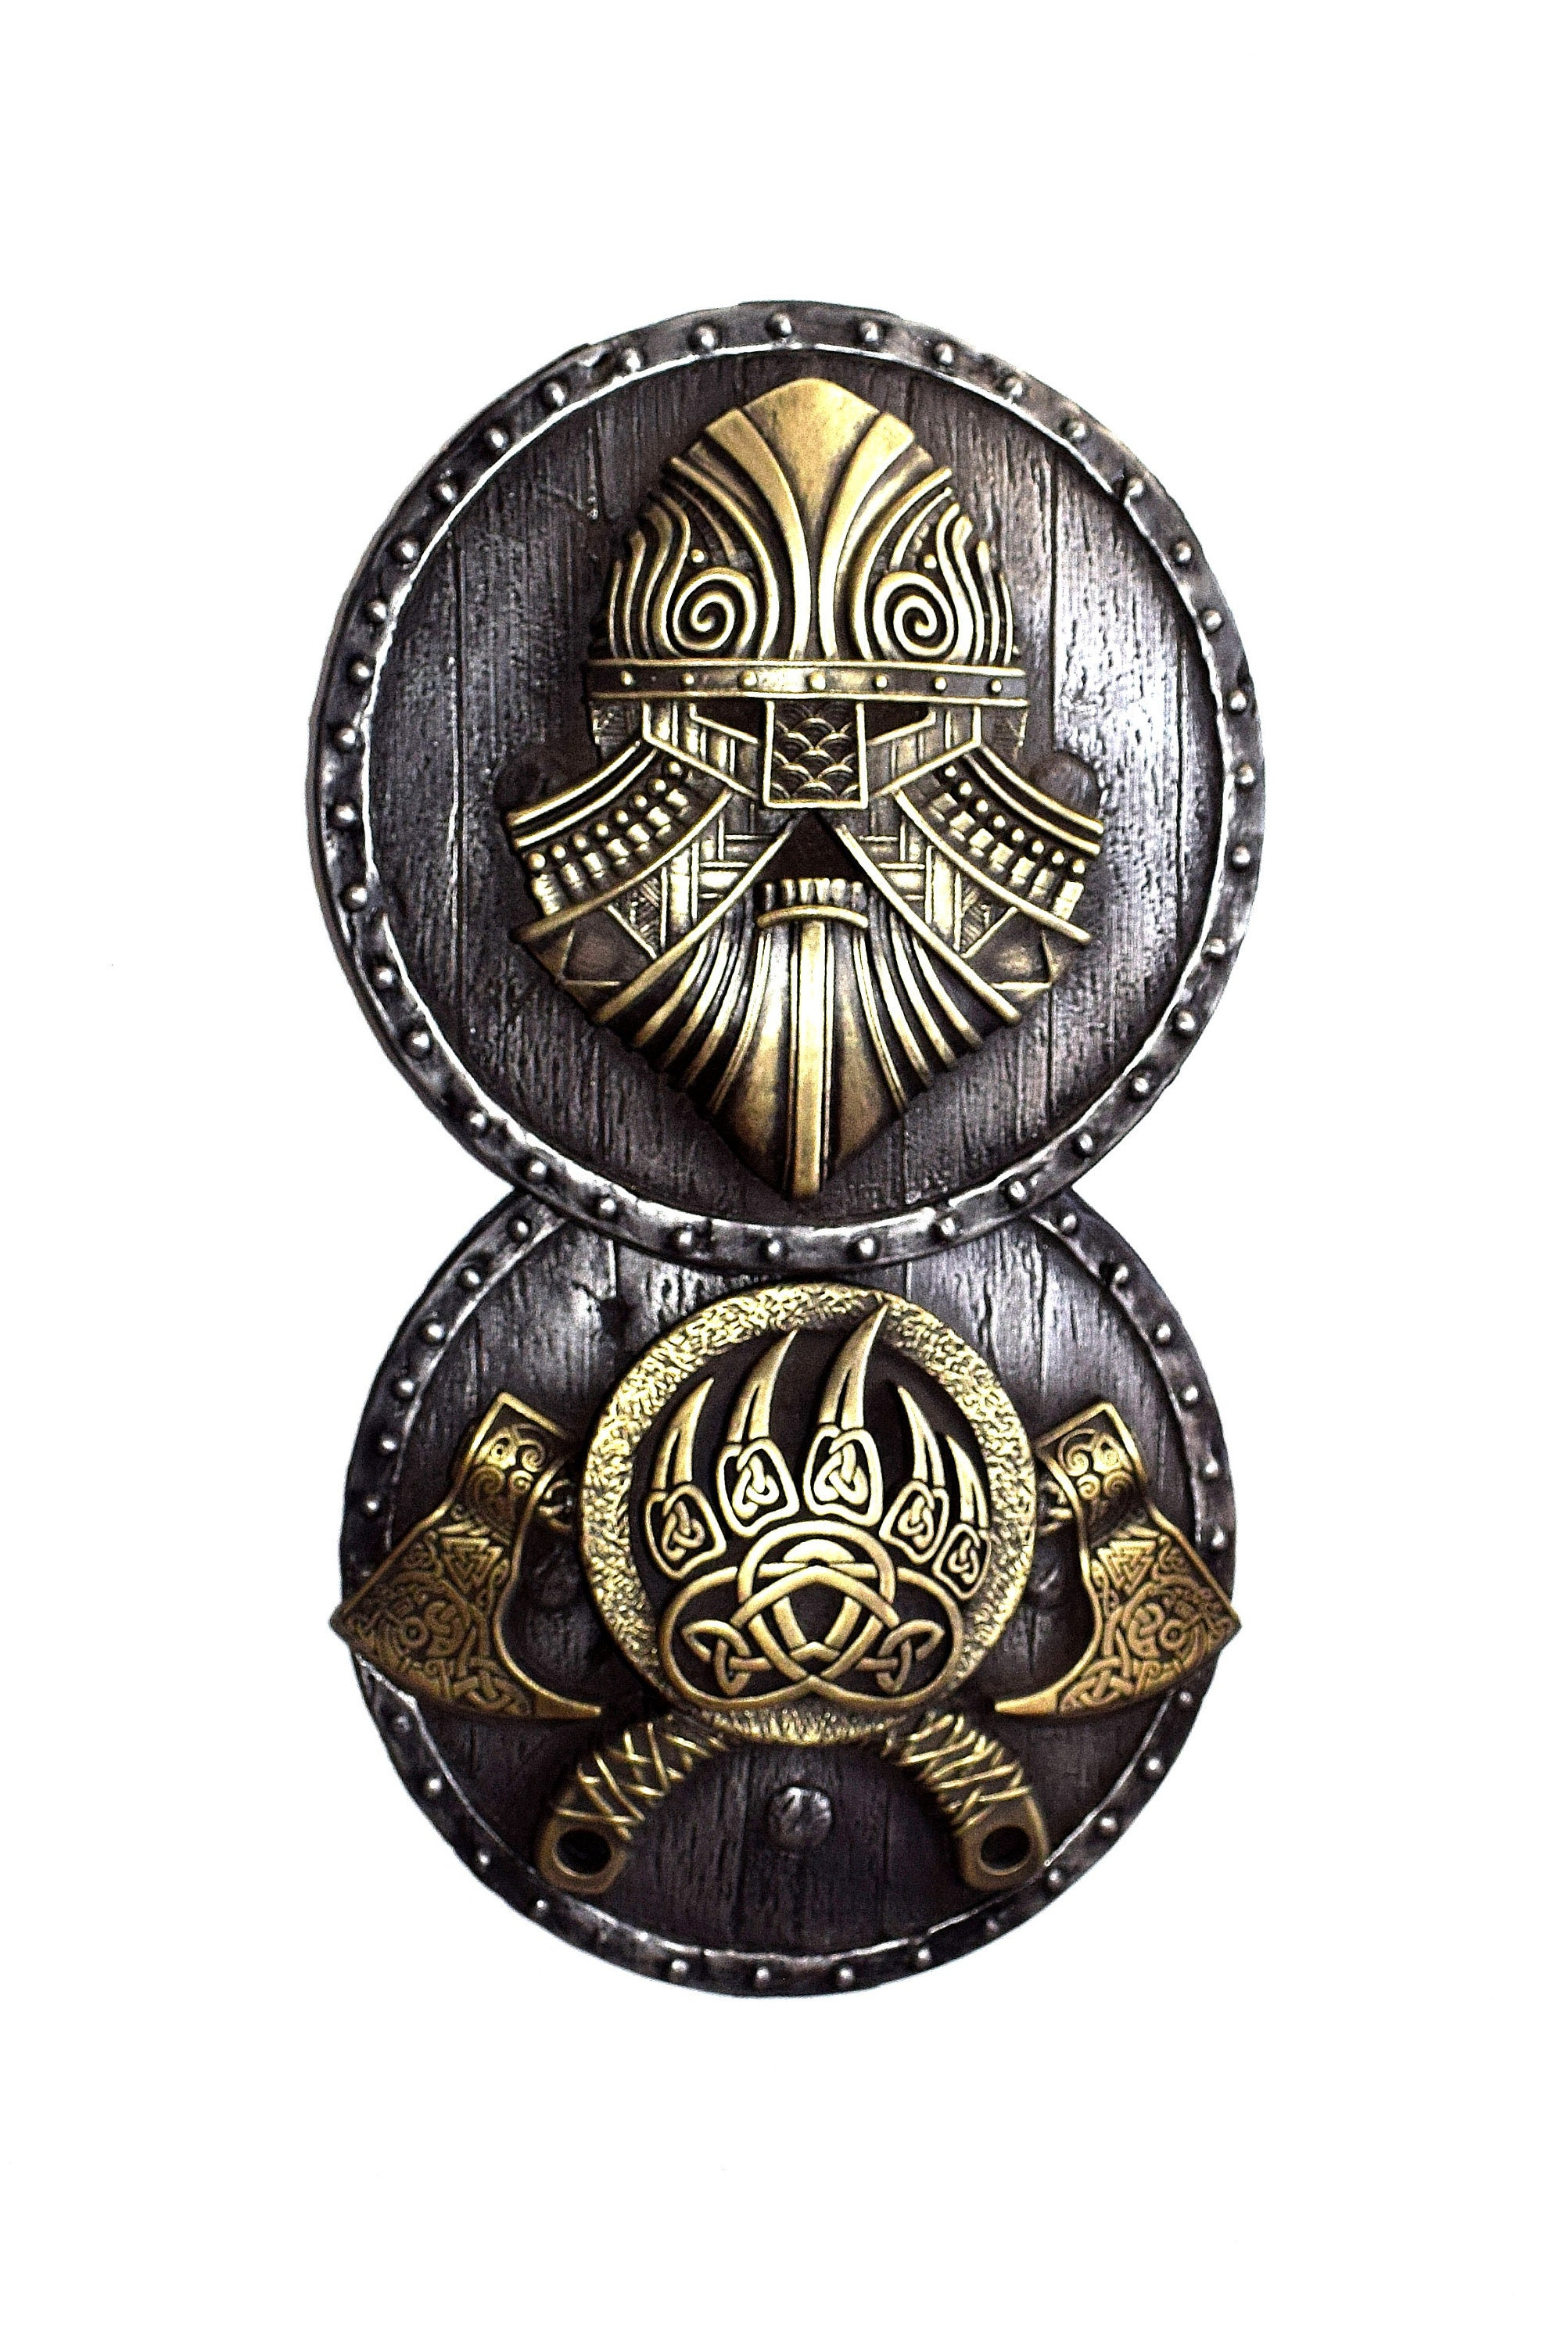 Viking Norse Axes on the Shield Iron Wall Sculpture Home Room Decor  Gift